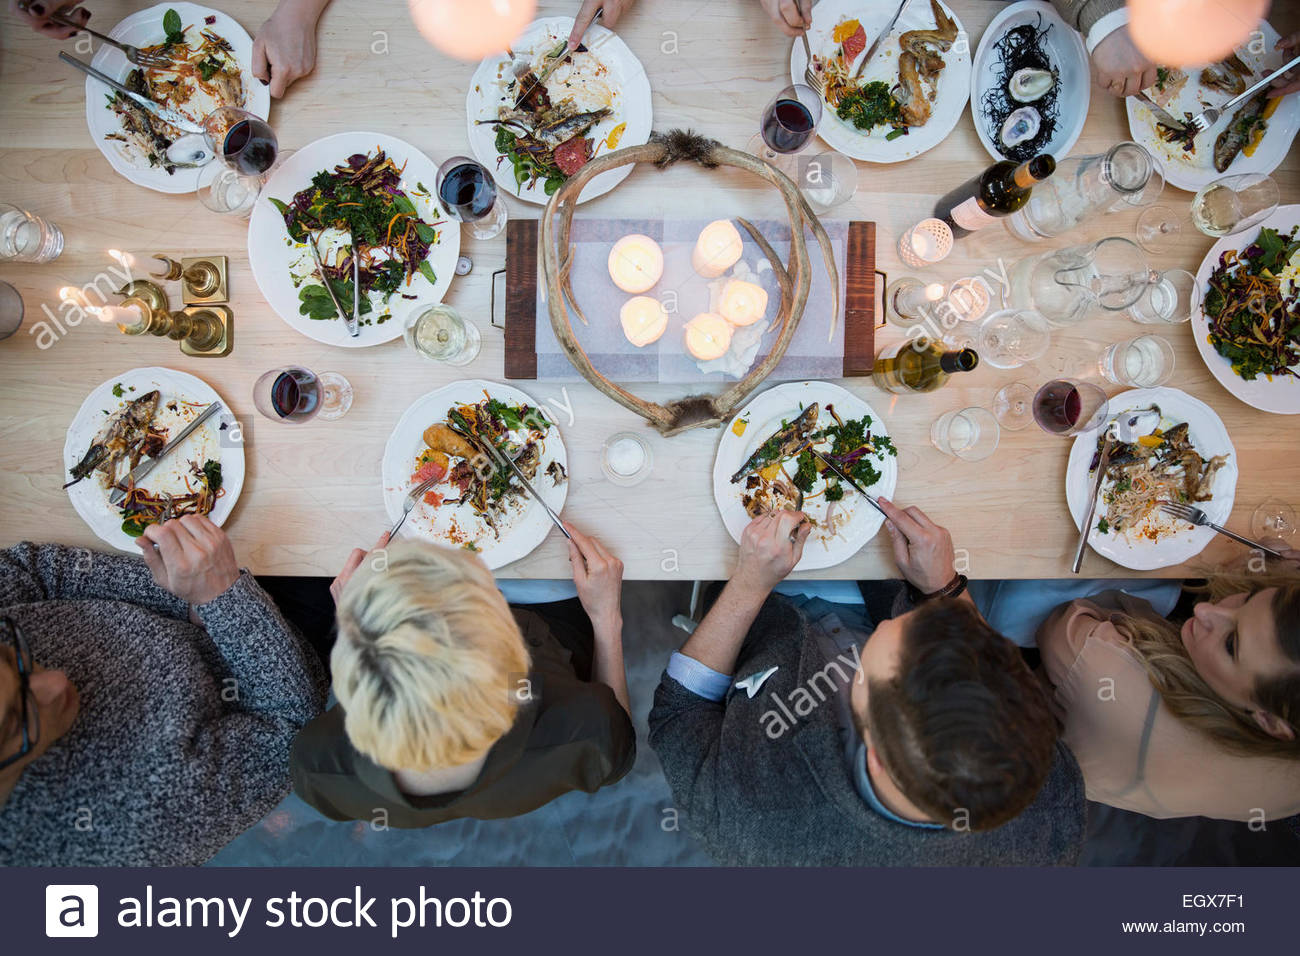 View from above friends eating at restaurant table - Stock Image